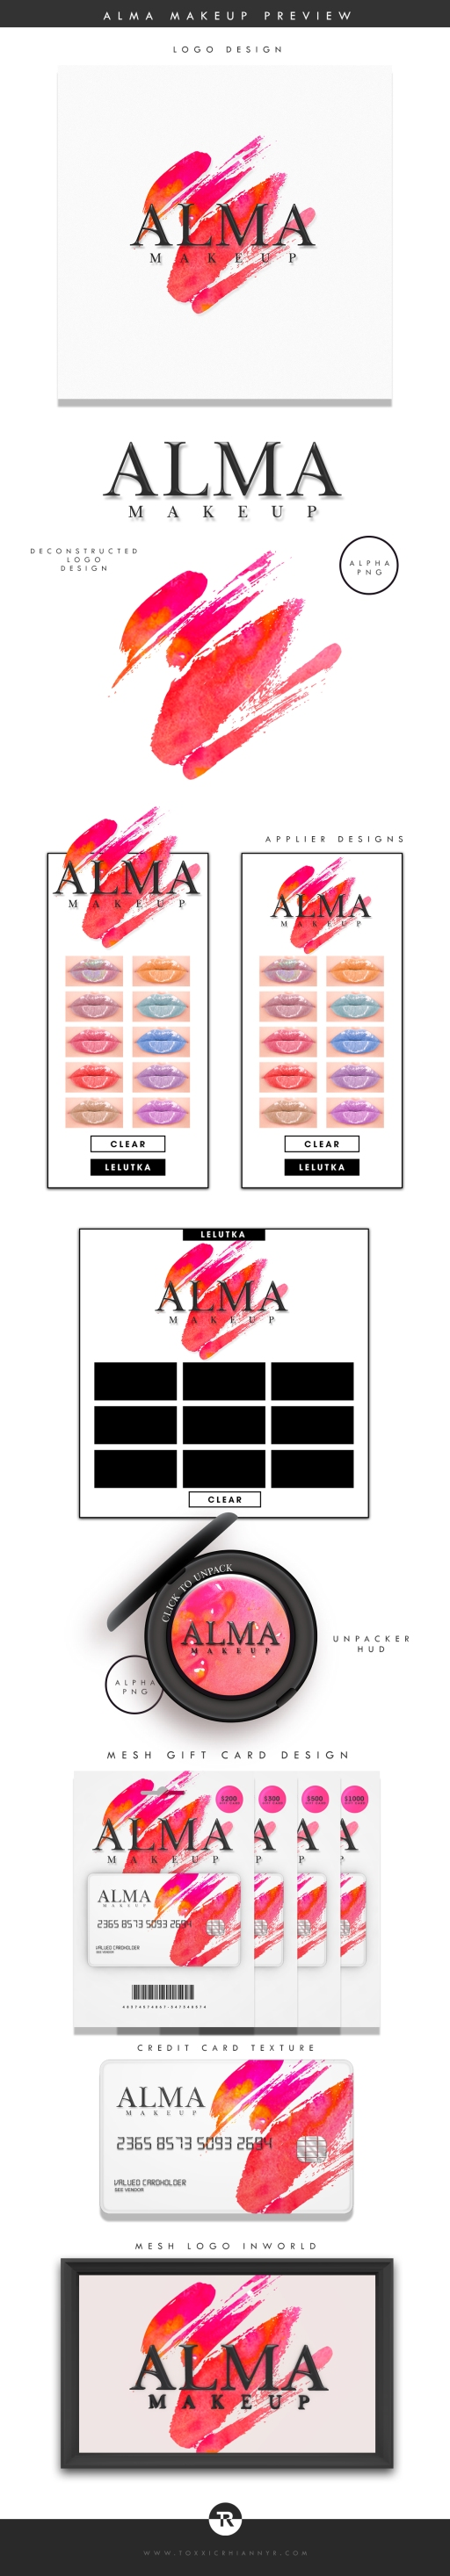 alma-makeup-preview